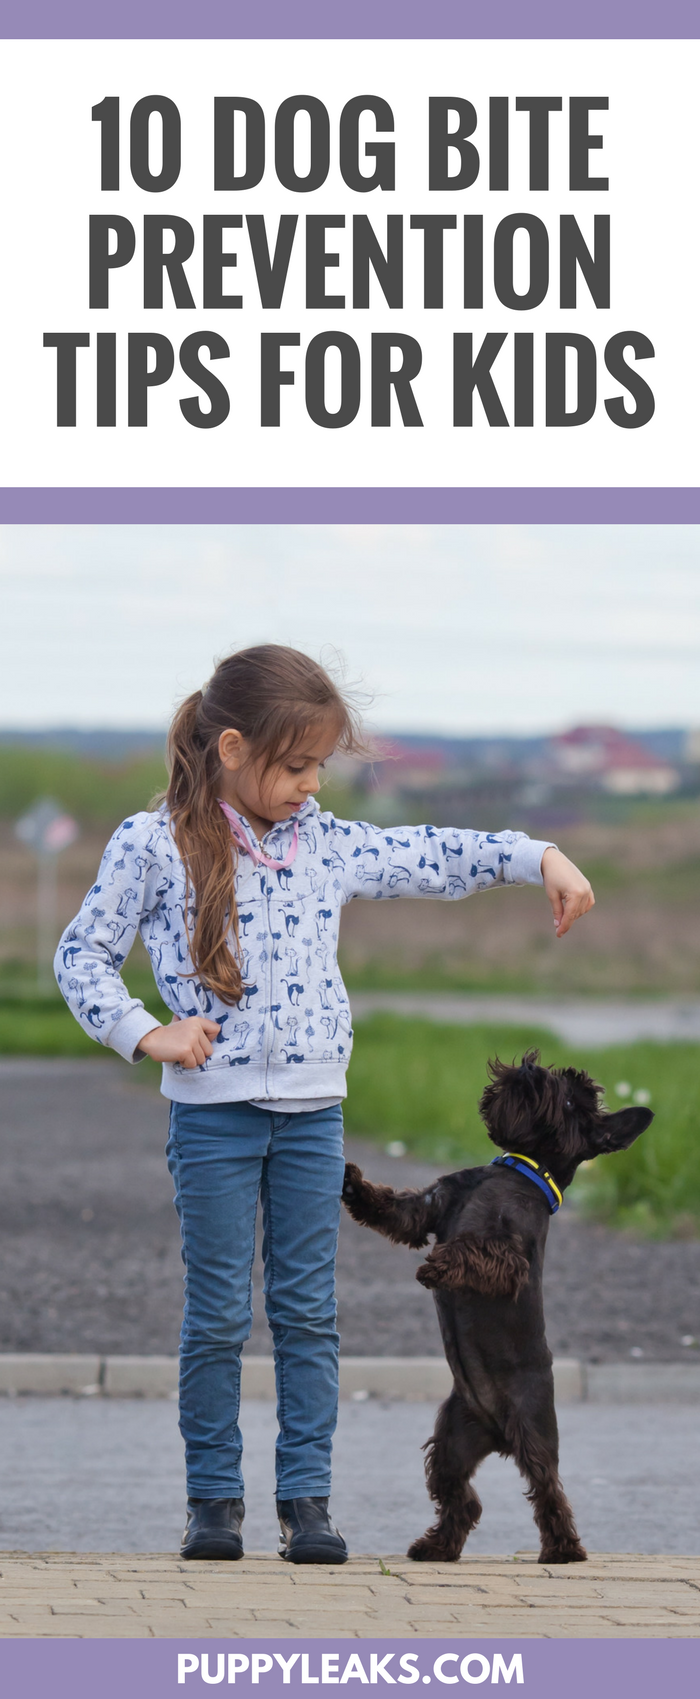 10 Dog Bite Prevention Tips for Kids